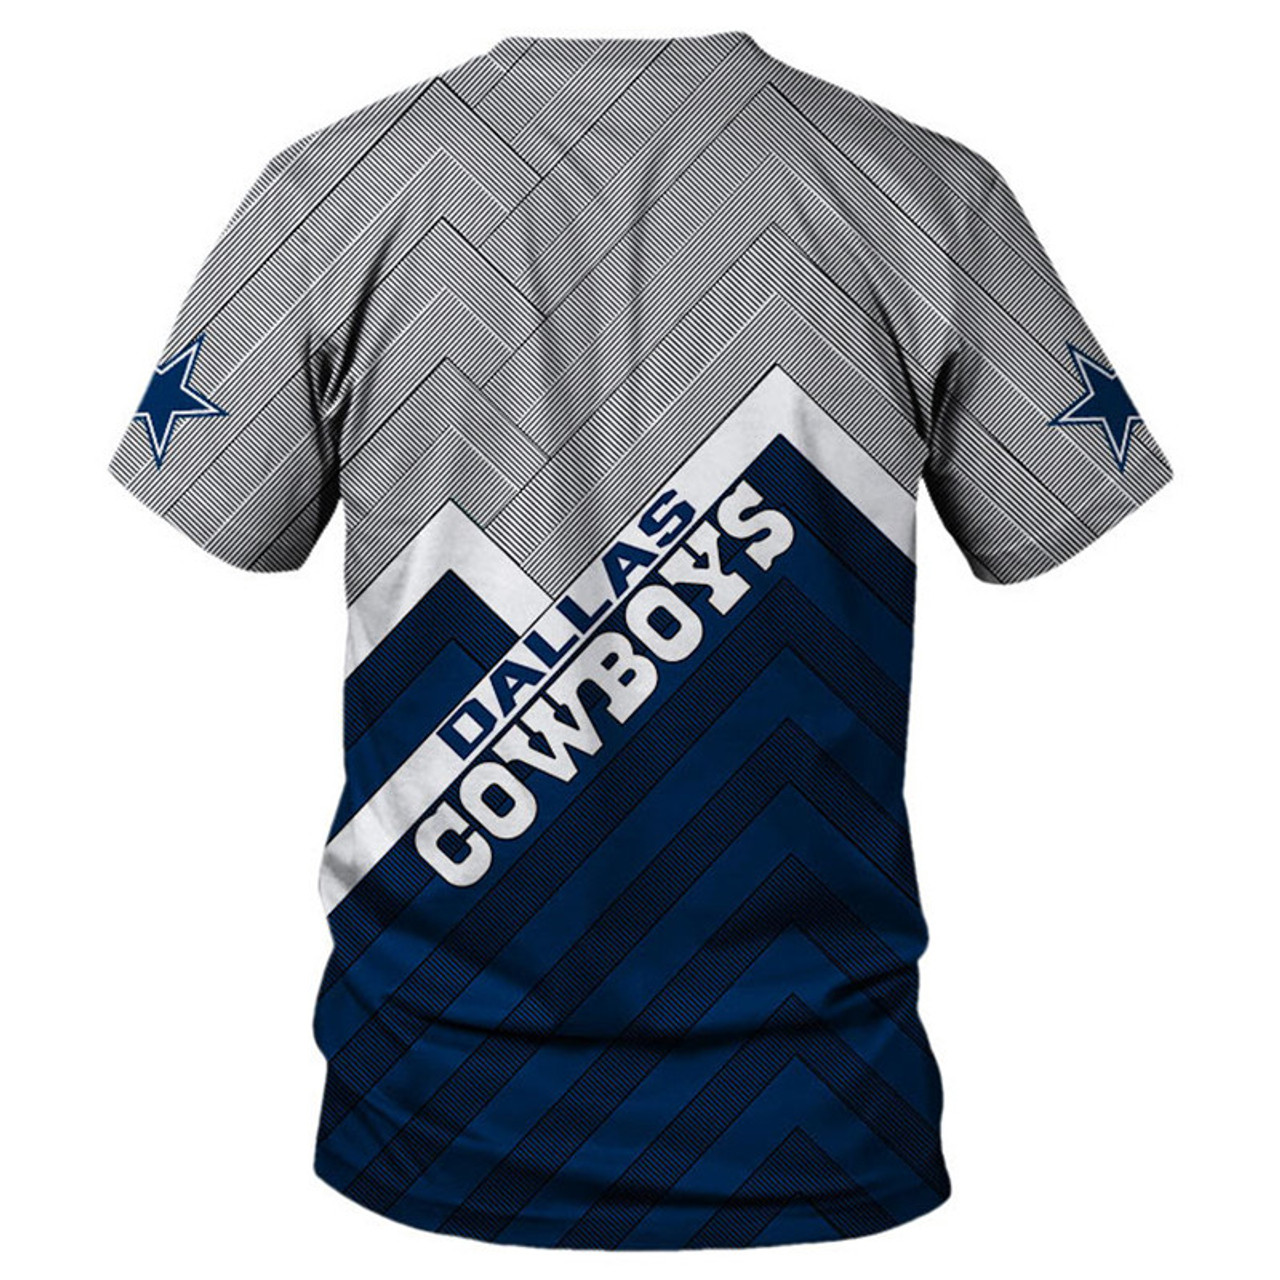 **(OFFICIAL-N.F.L.DALLAS-COWBOYS-TEAM-TEES/NICE-3D-CUSTOM-COWBOYS-LOGOS & OFFICIAL-COWBOYS-CLASSIC-TEAM-COLORS/NICE-3D-DETAILED-GRAPHIC-PRINTED-DOUBLE-SIDED/ALL-OVER-ENTIRE-TEE-SHIRT-PRINTED-DESIGN/TRENDY-PREMIUM-N.F.L.COWBOYS-GAME-DAY-TEES)**